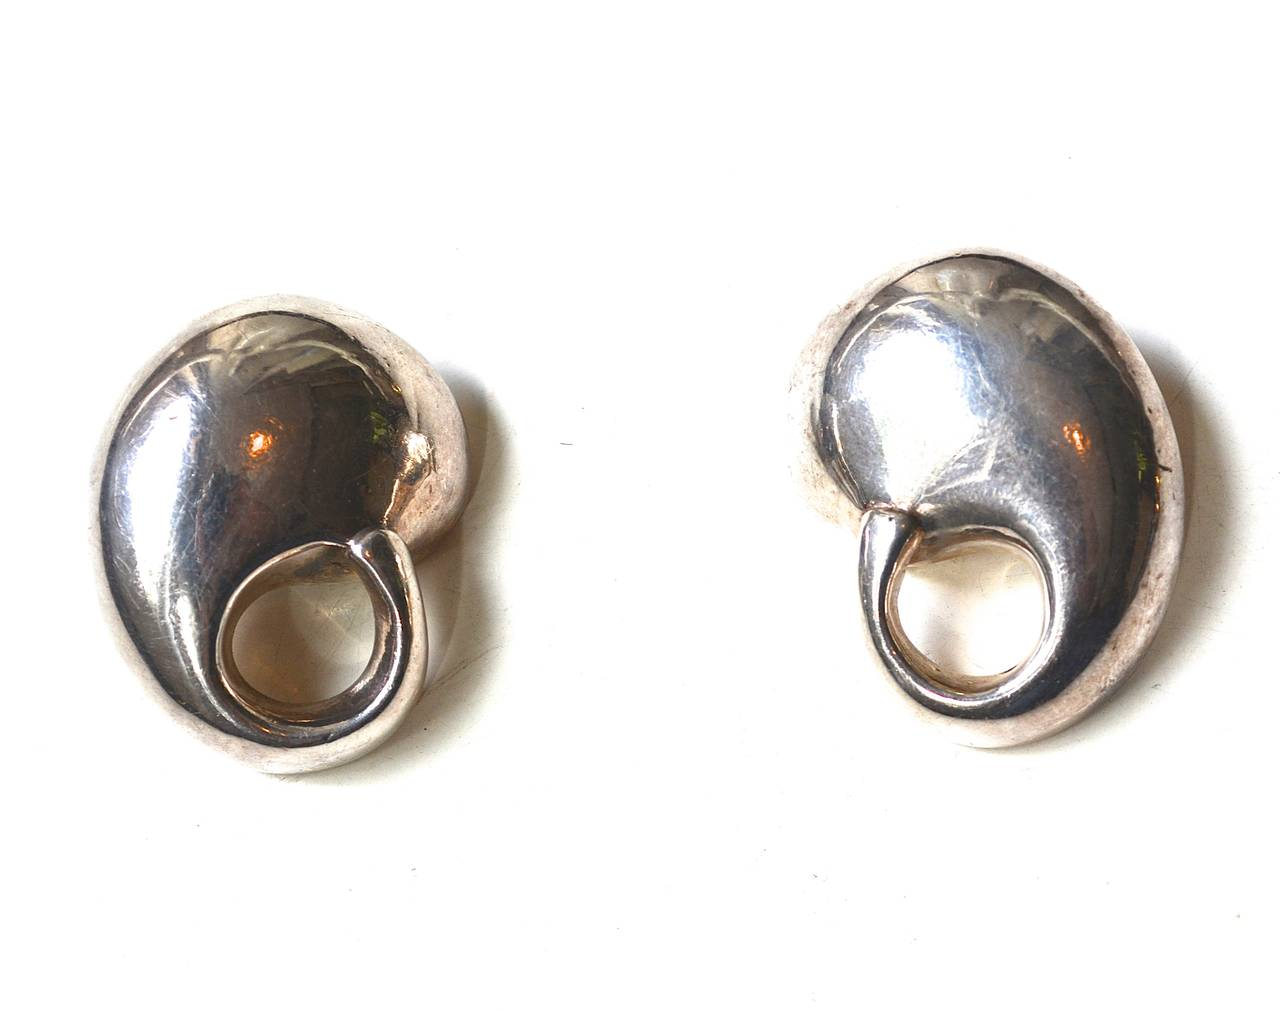 Organic Mod Sterling Earrings In Good Condition For Sale In Litchfield County, CT